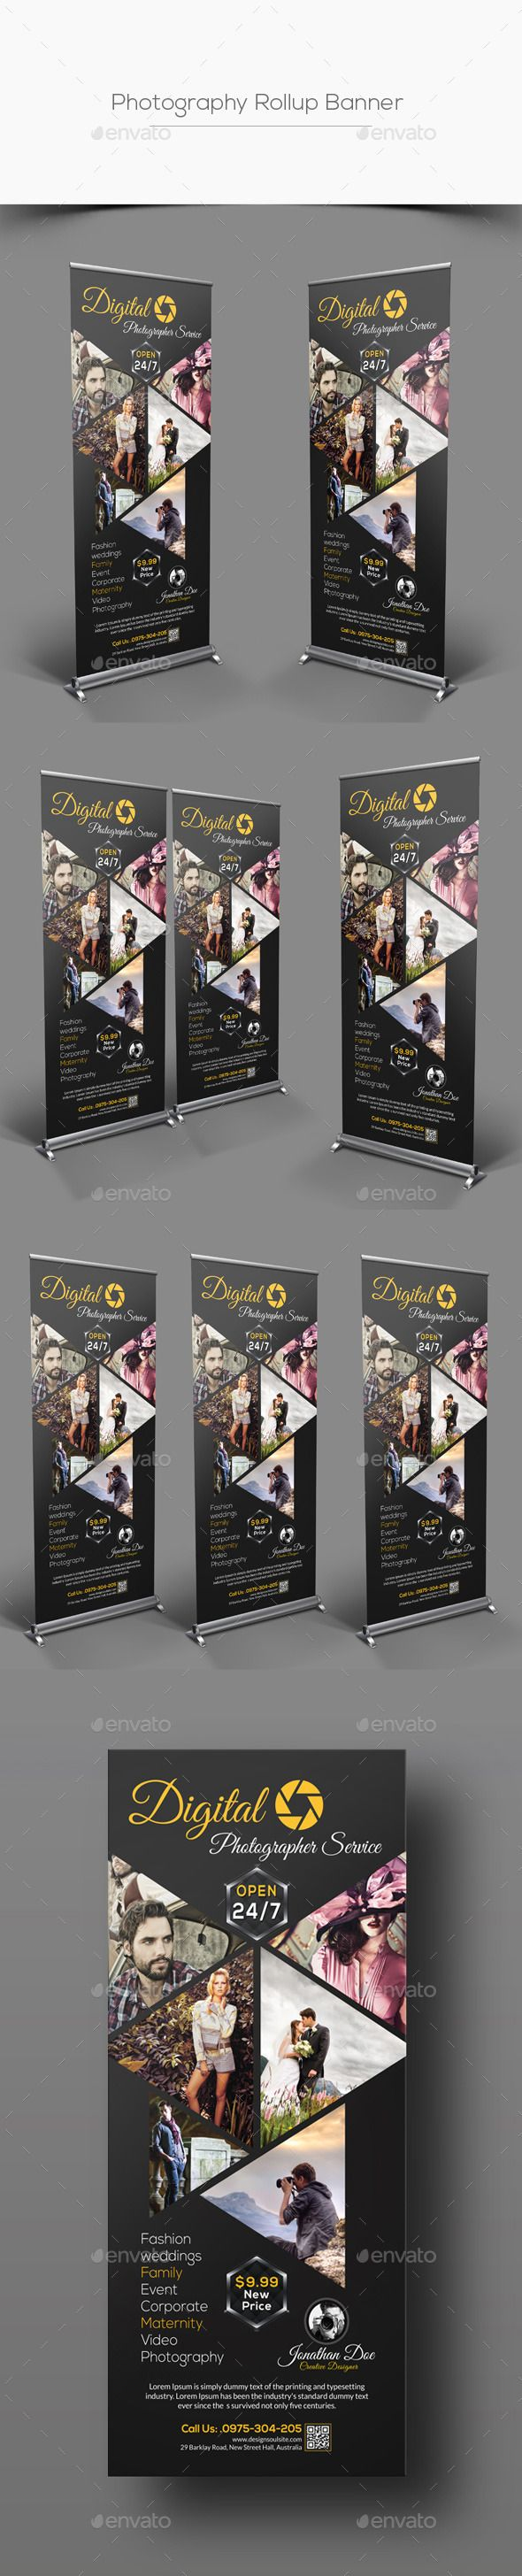 Photography Rollup Banner Template #design Buy Now: http://graphicriver.net/item/photography-rollup-banner/12862089?ref=ksioks